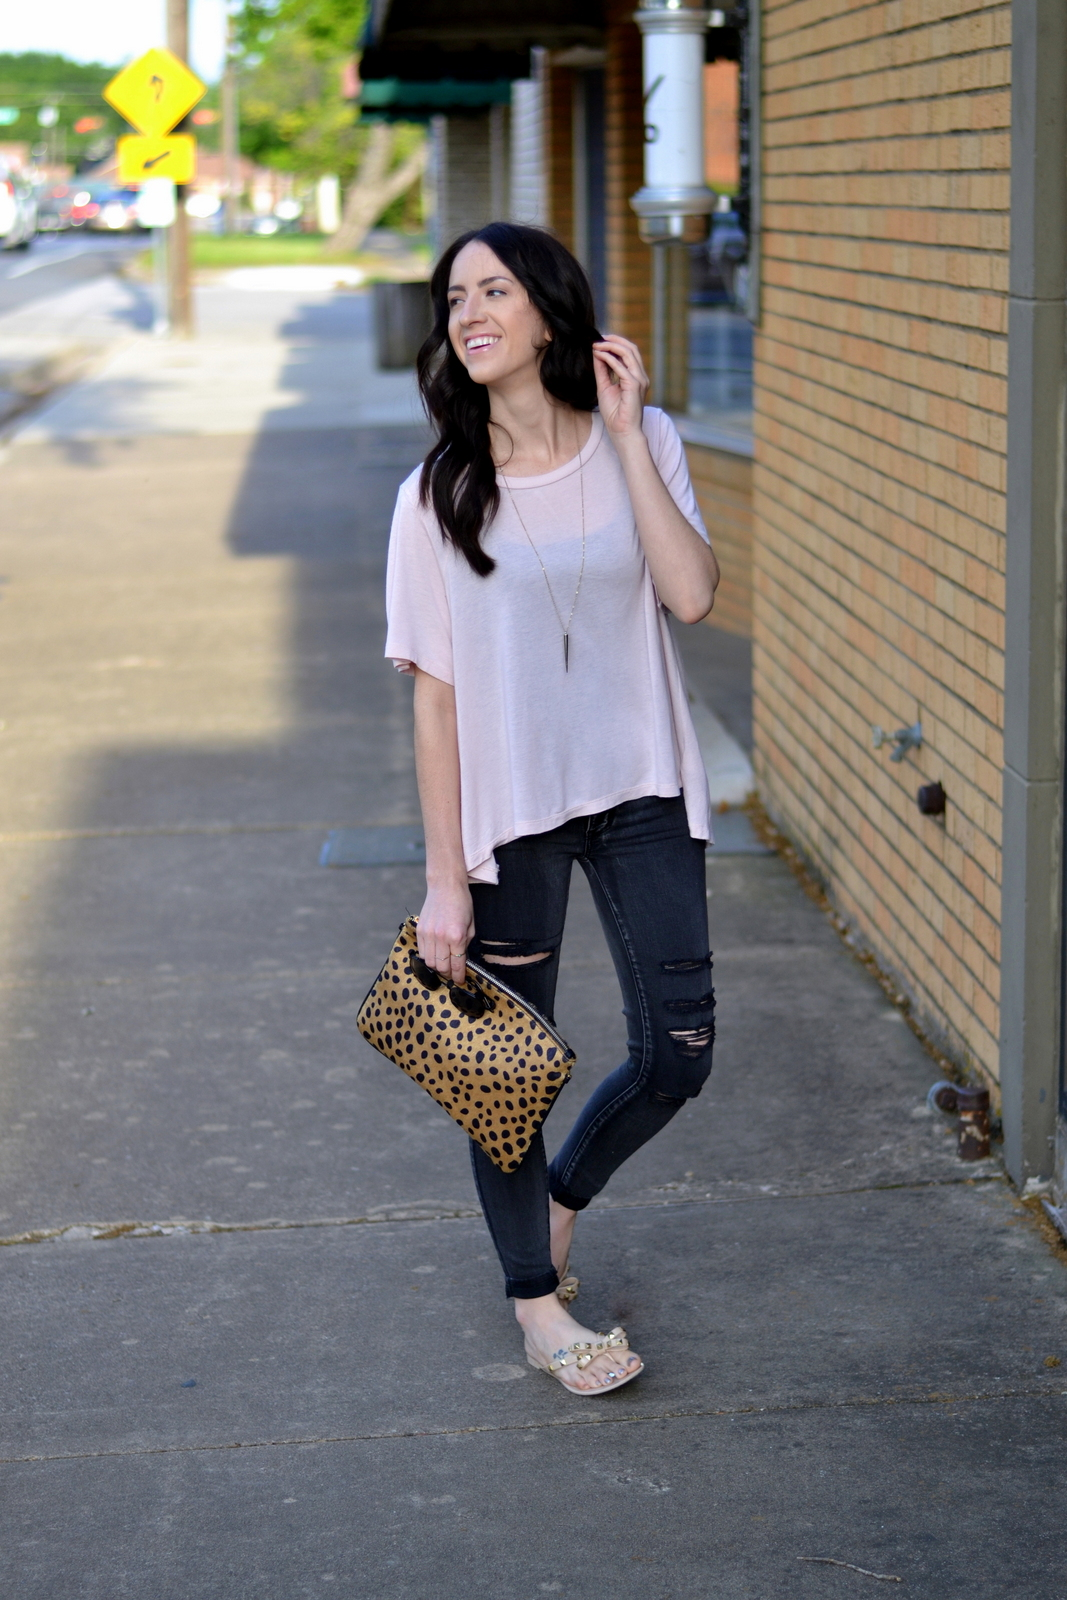 Casual Spring Outfit wearing a loose cotton tee and distressed jeans